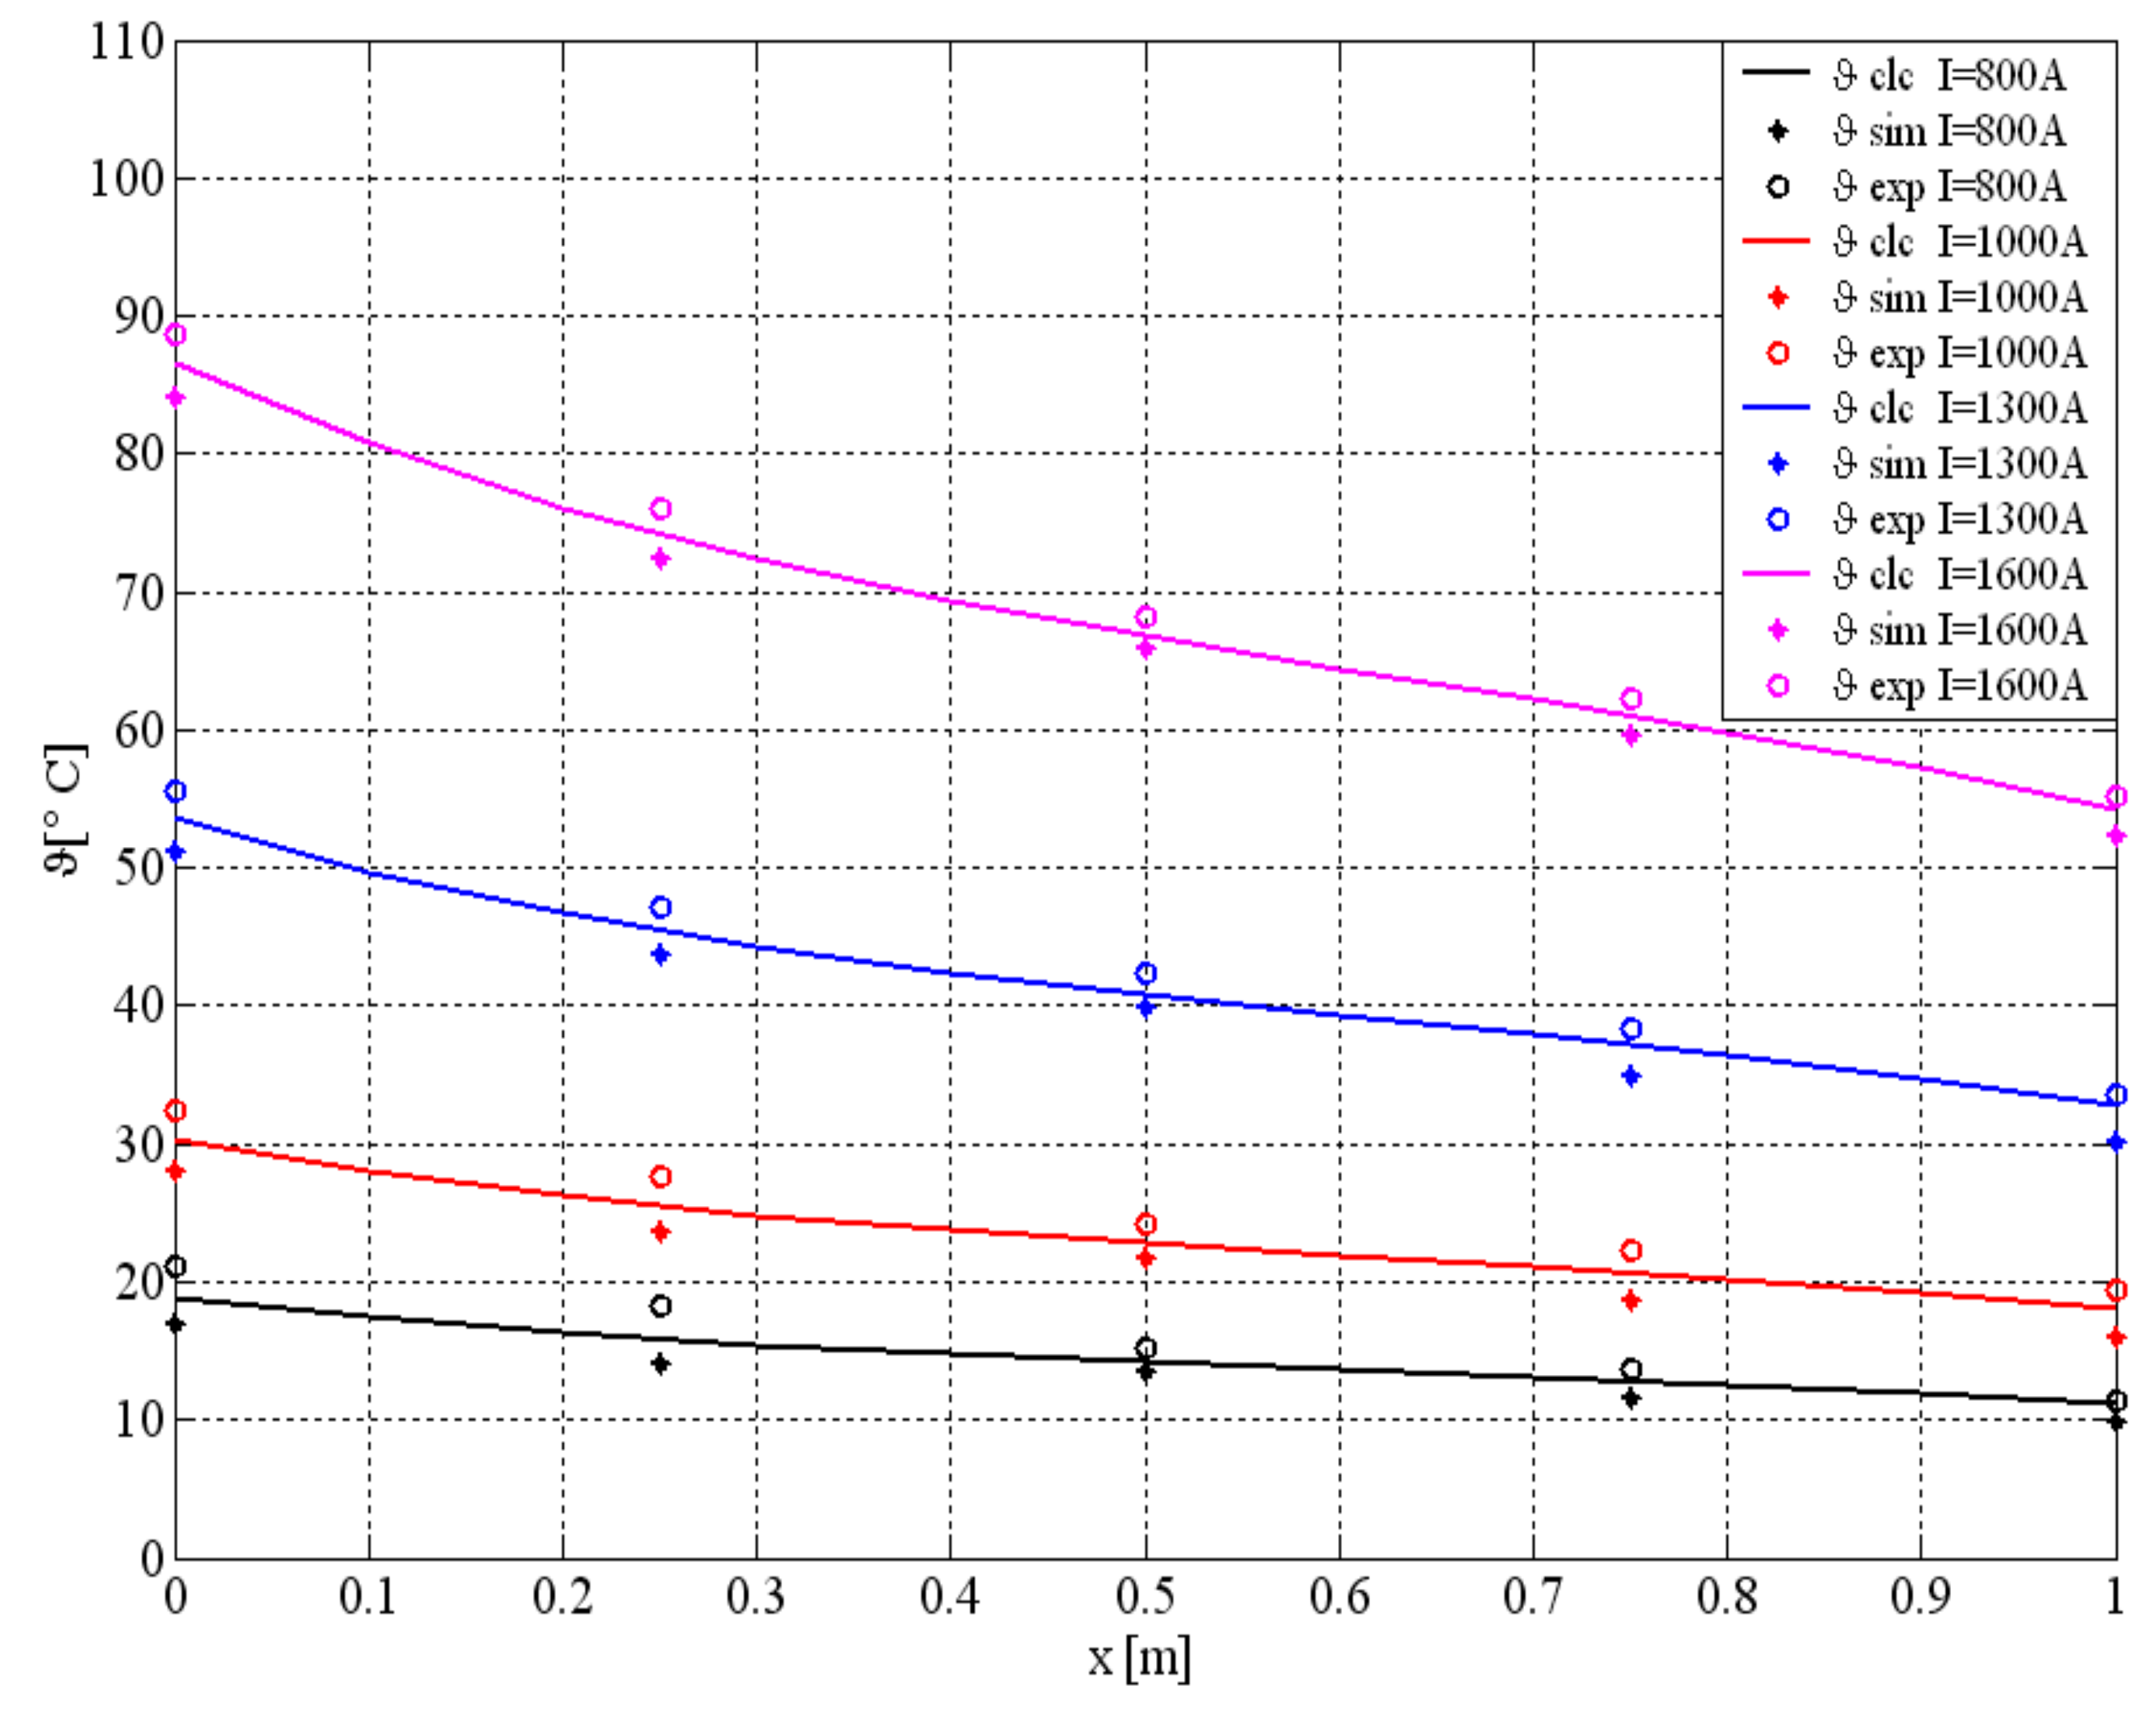 Energies Free Full Text Thermal Analysis Of Busbars From A High Current Power Supply System Html